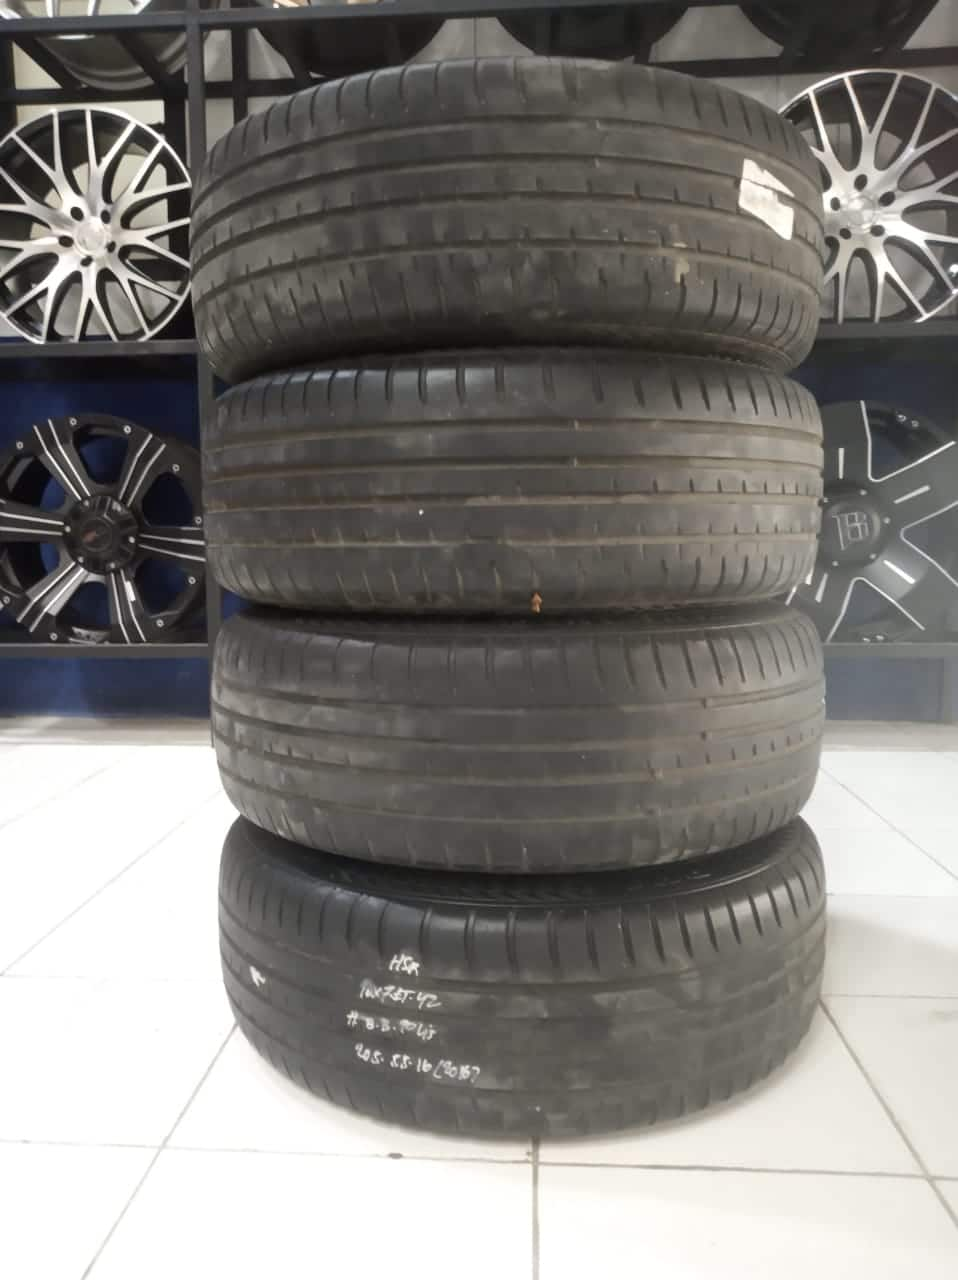 paket velg racing ring 16 pcd 4X100/4X114,3 Plus ban